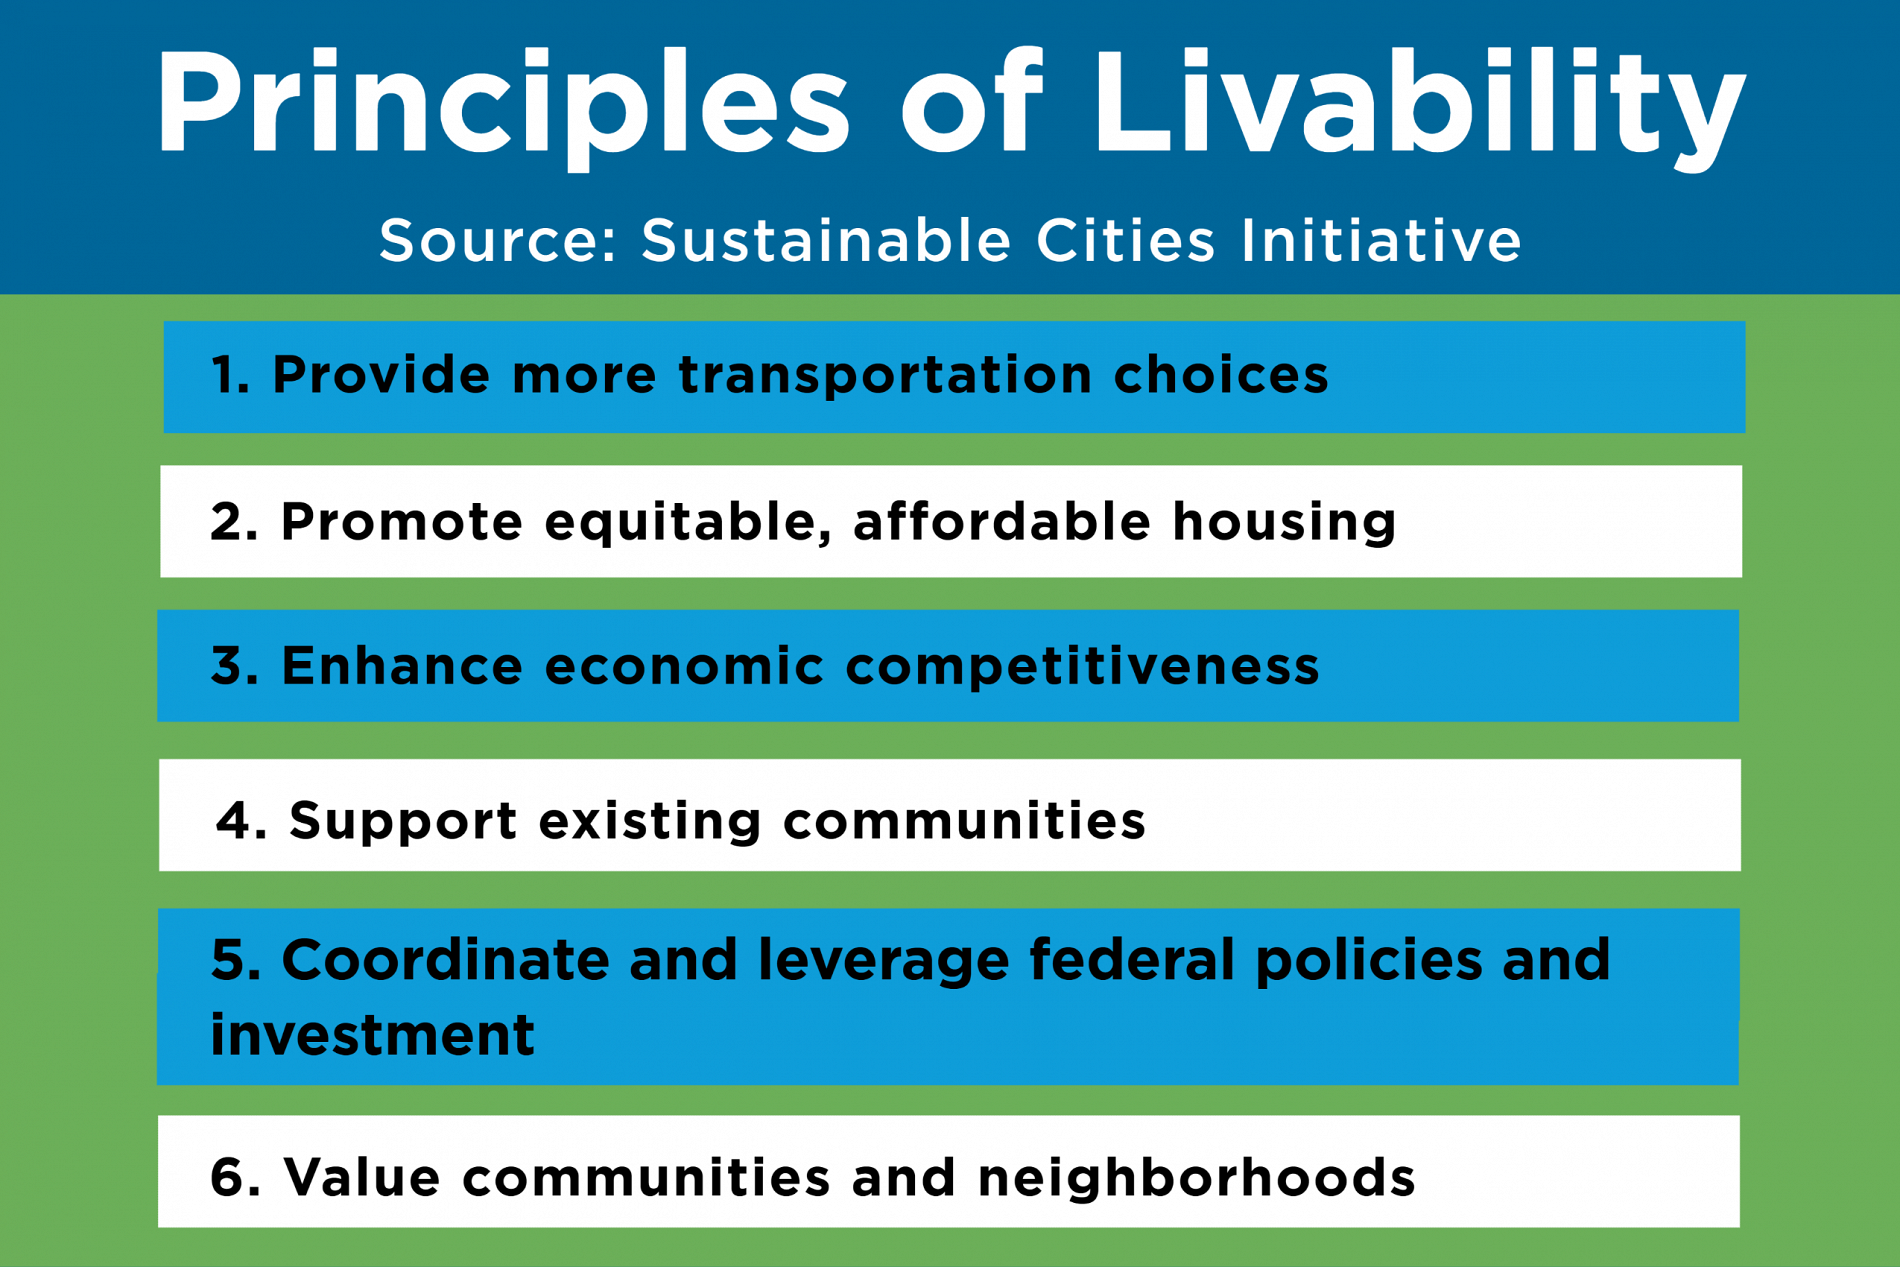 Principles of Livability